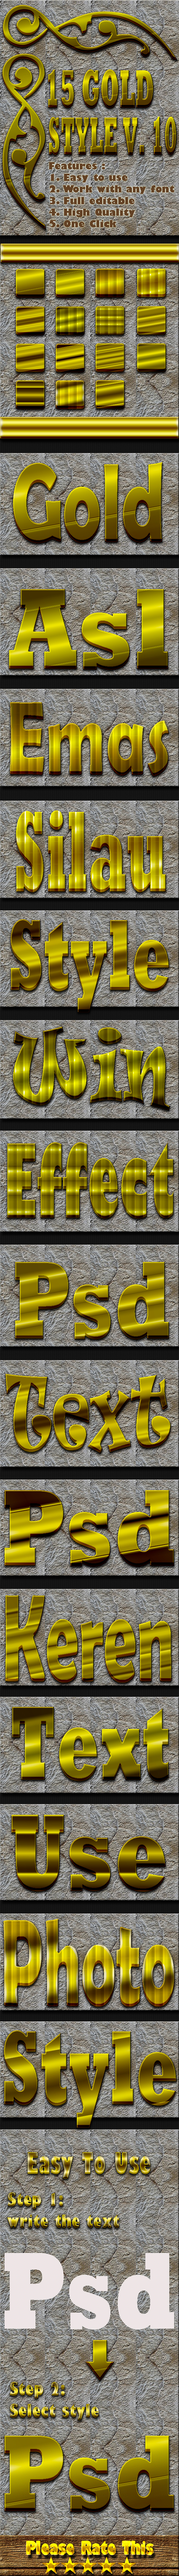 15 Gold Text Effect Style Vol 10 - Styles Photoshop